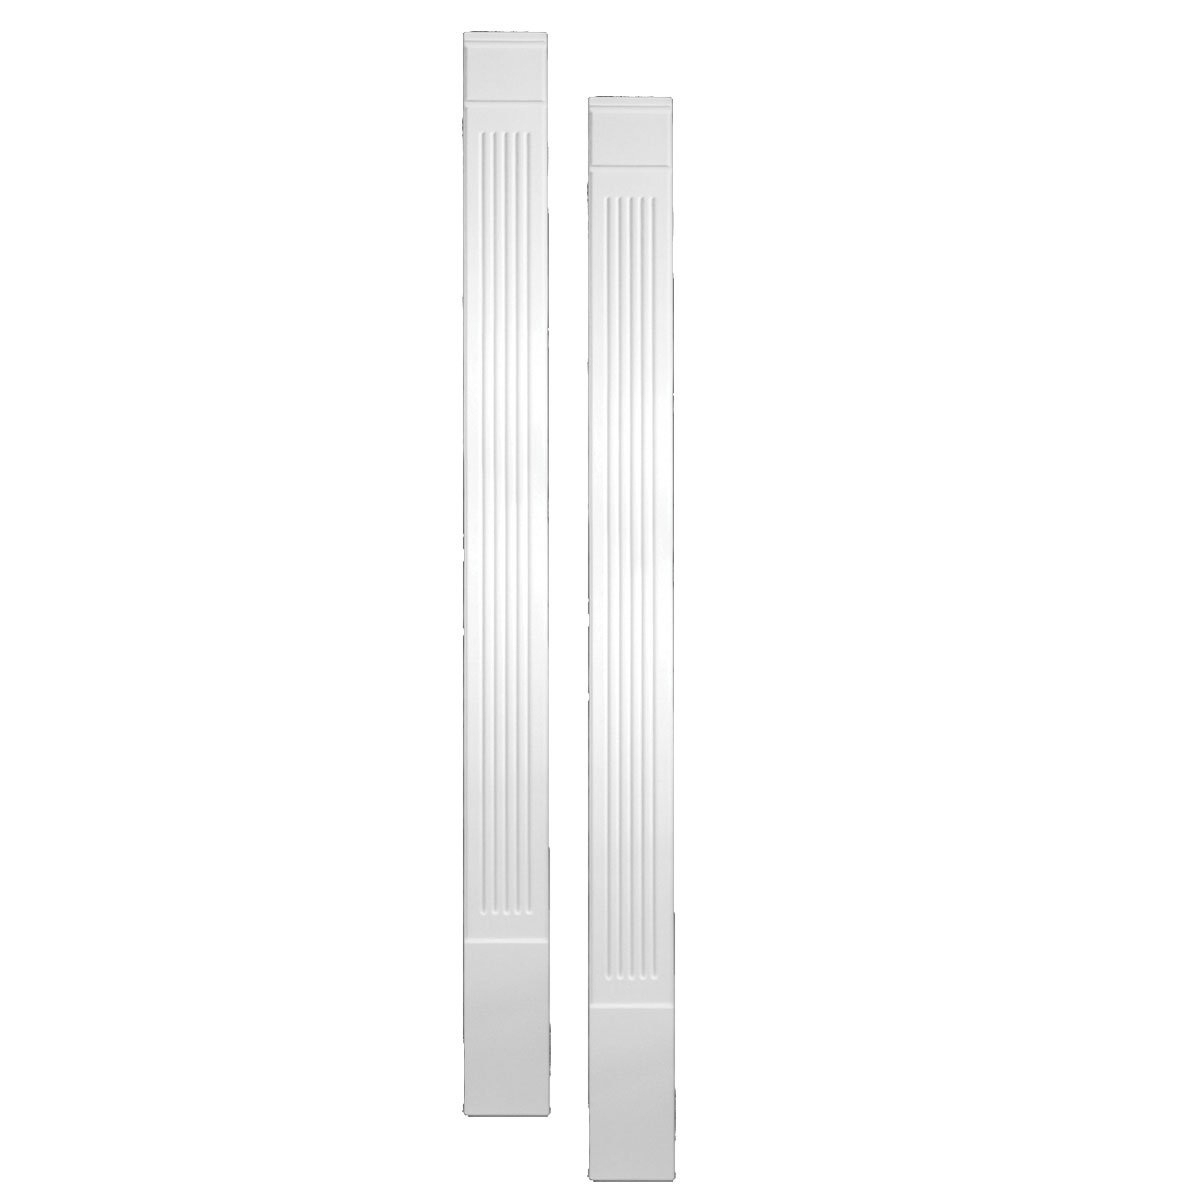 Fypon PIL3X90E 3'' W x 90'' H x 1 1/4'' P Fluted Economy Pilaster, Moulded with Plinth Block (Set of 2), 1 Piece